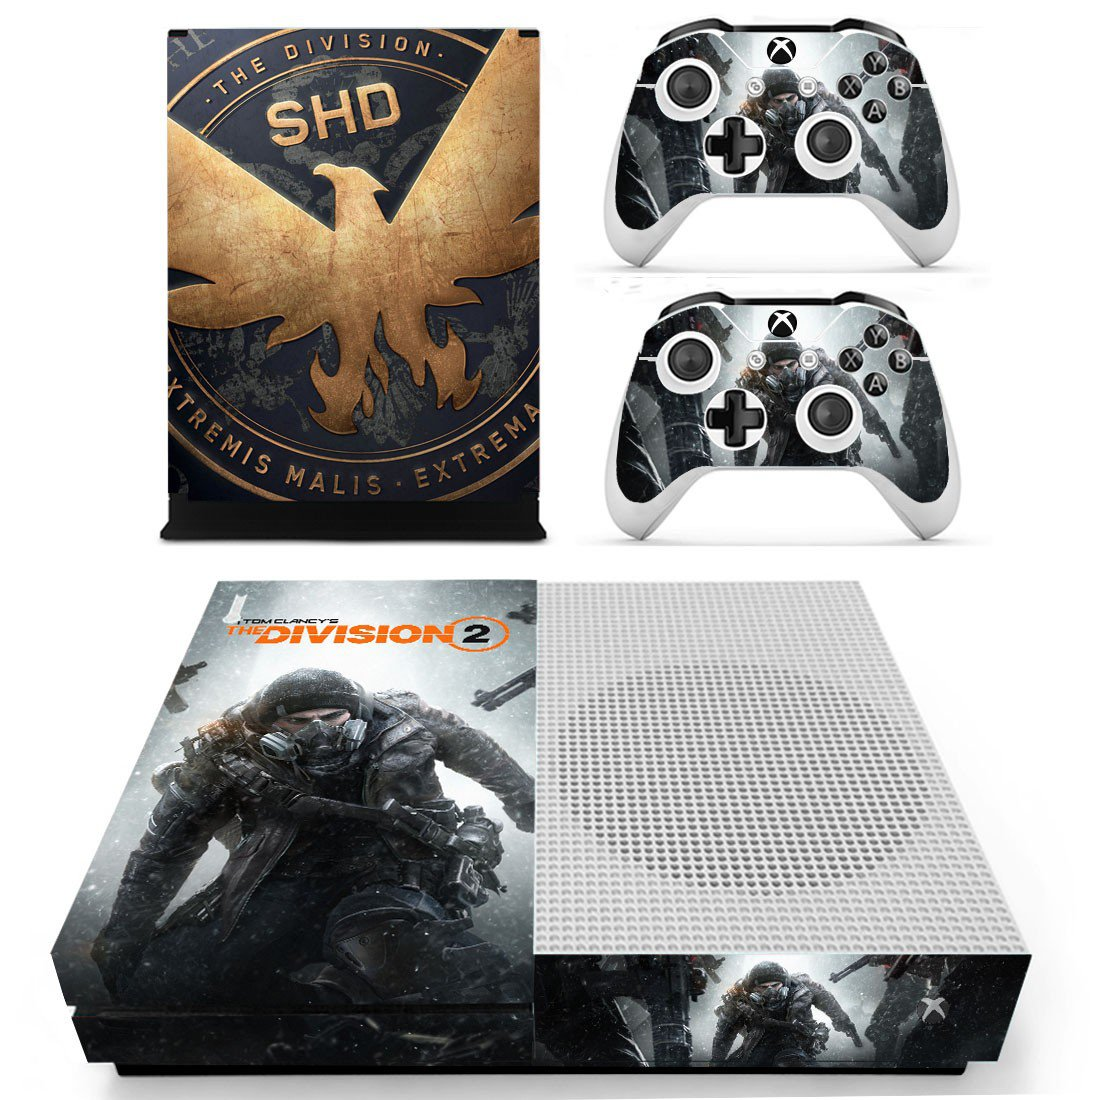 The Division 2 Xbox one S skin